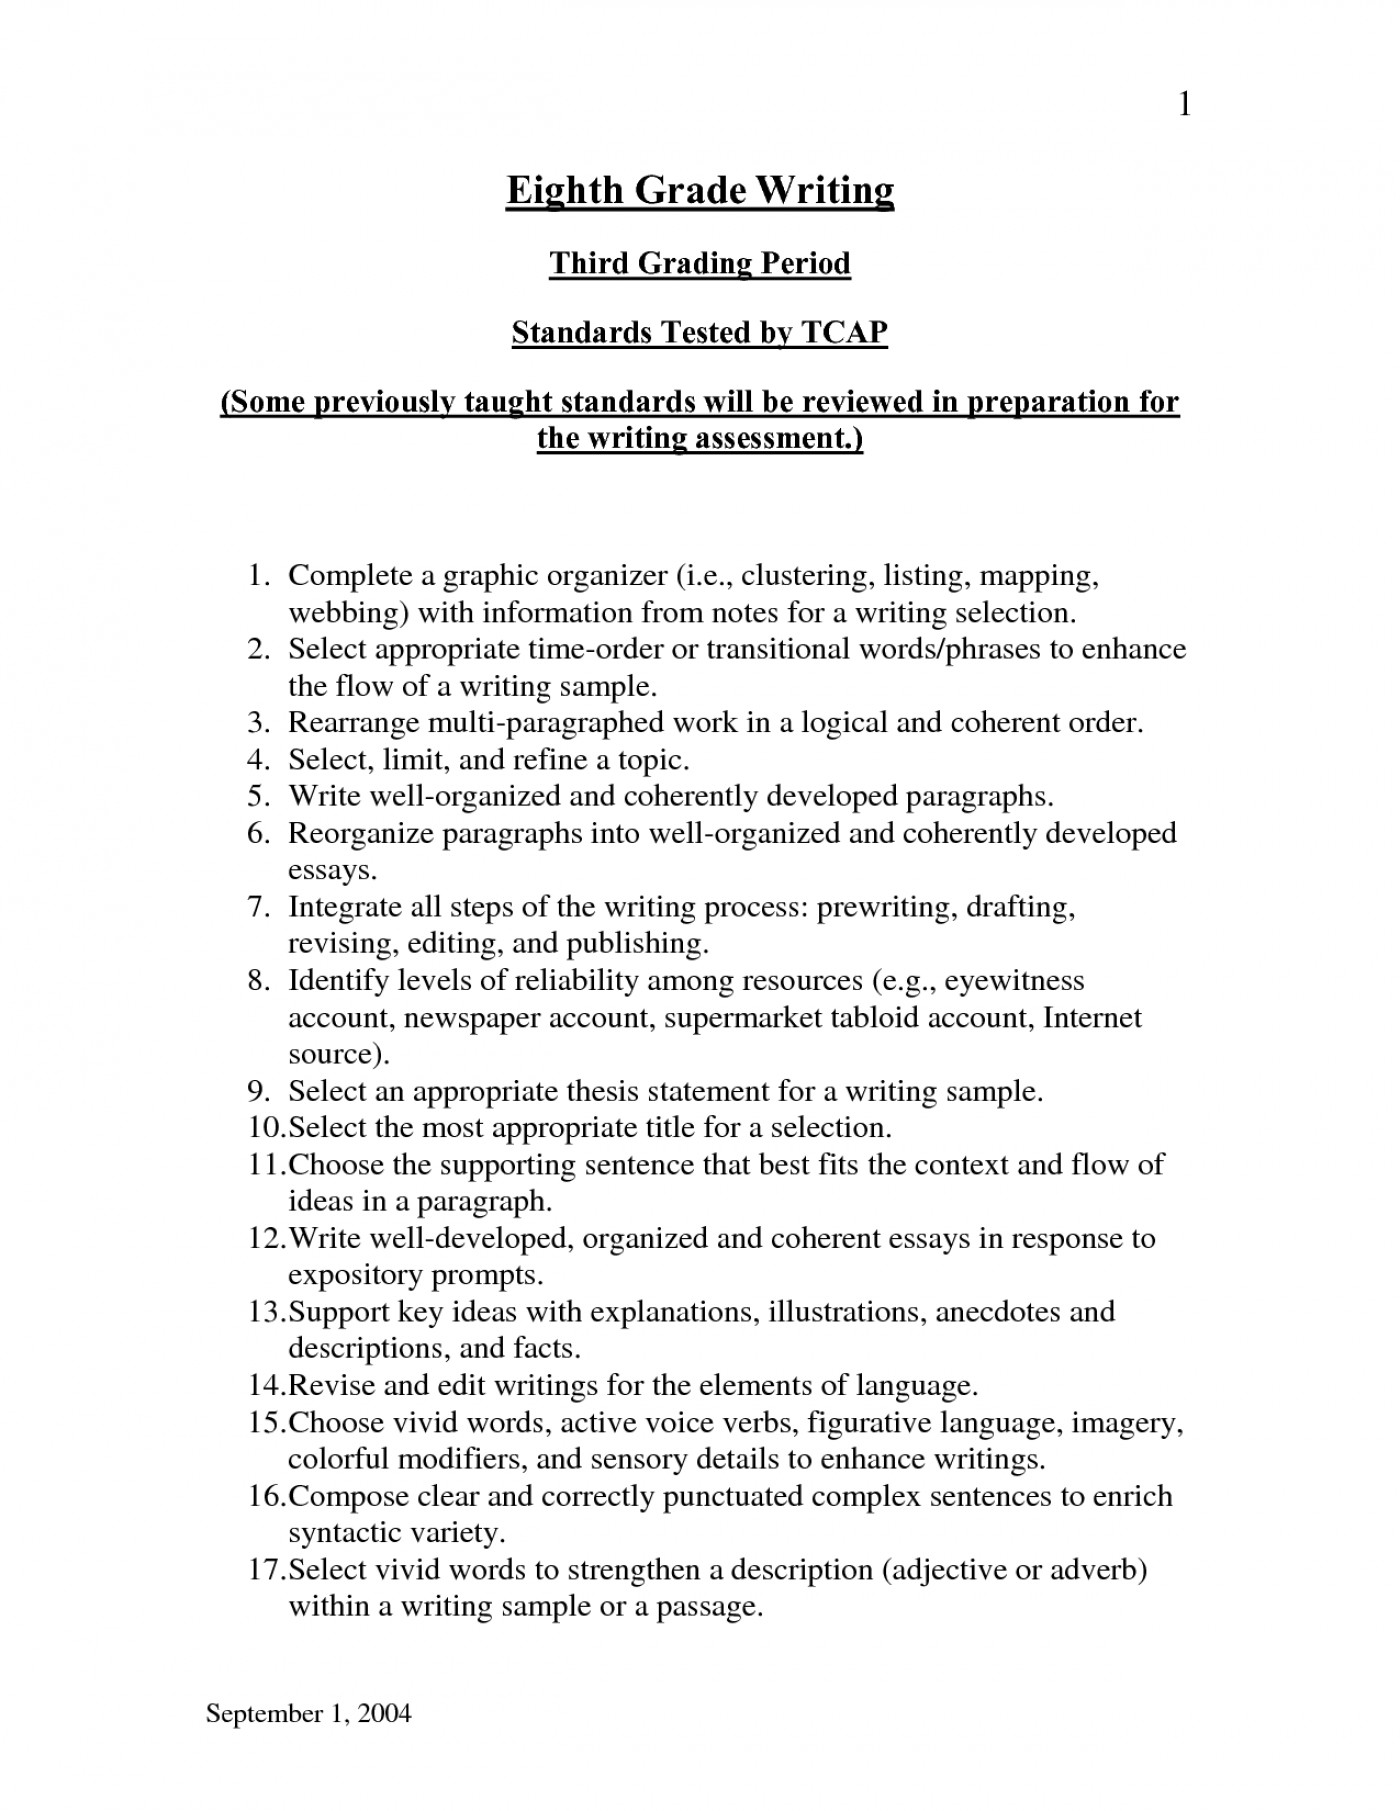 012 Essay Example What Is An Expository Writing Prompts For High School 1088622 Magnificent Gcu Middle Powerpoint 1400